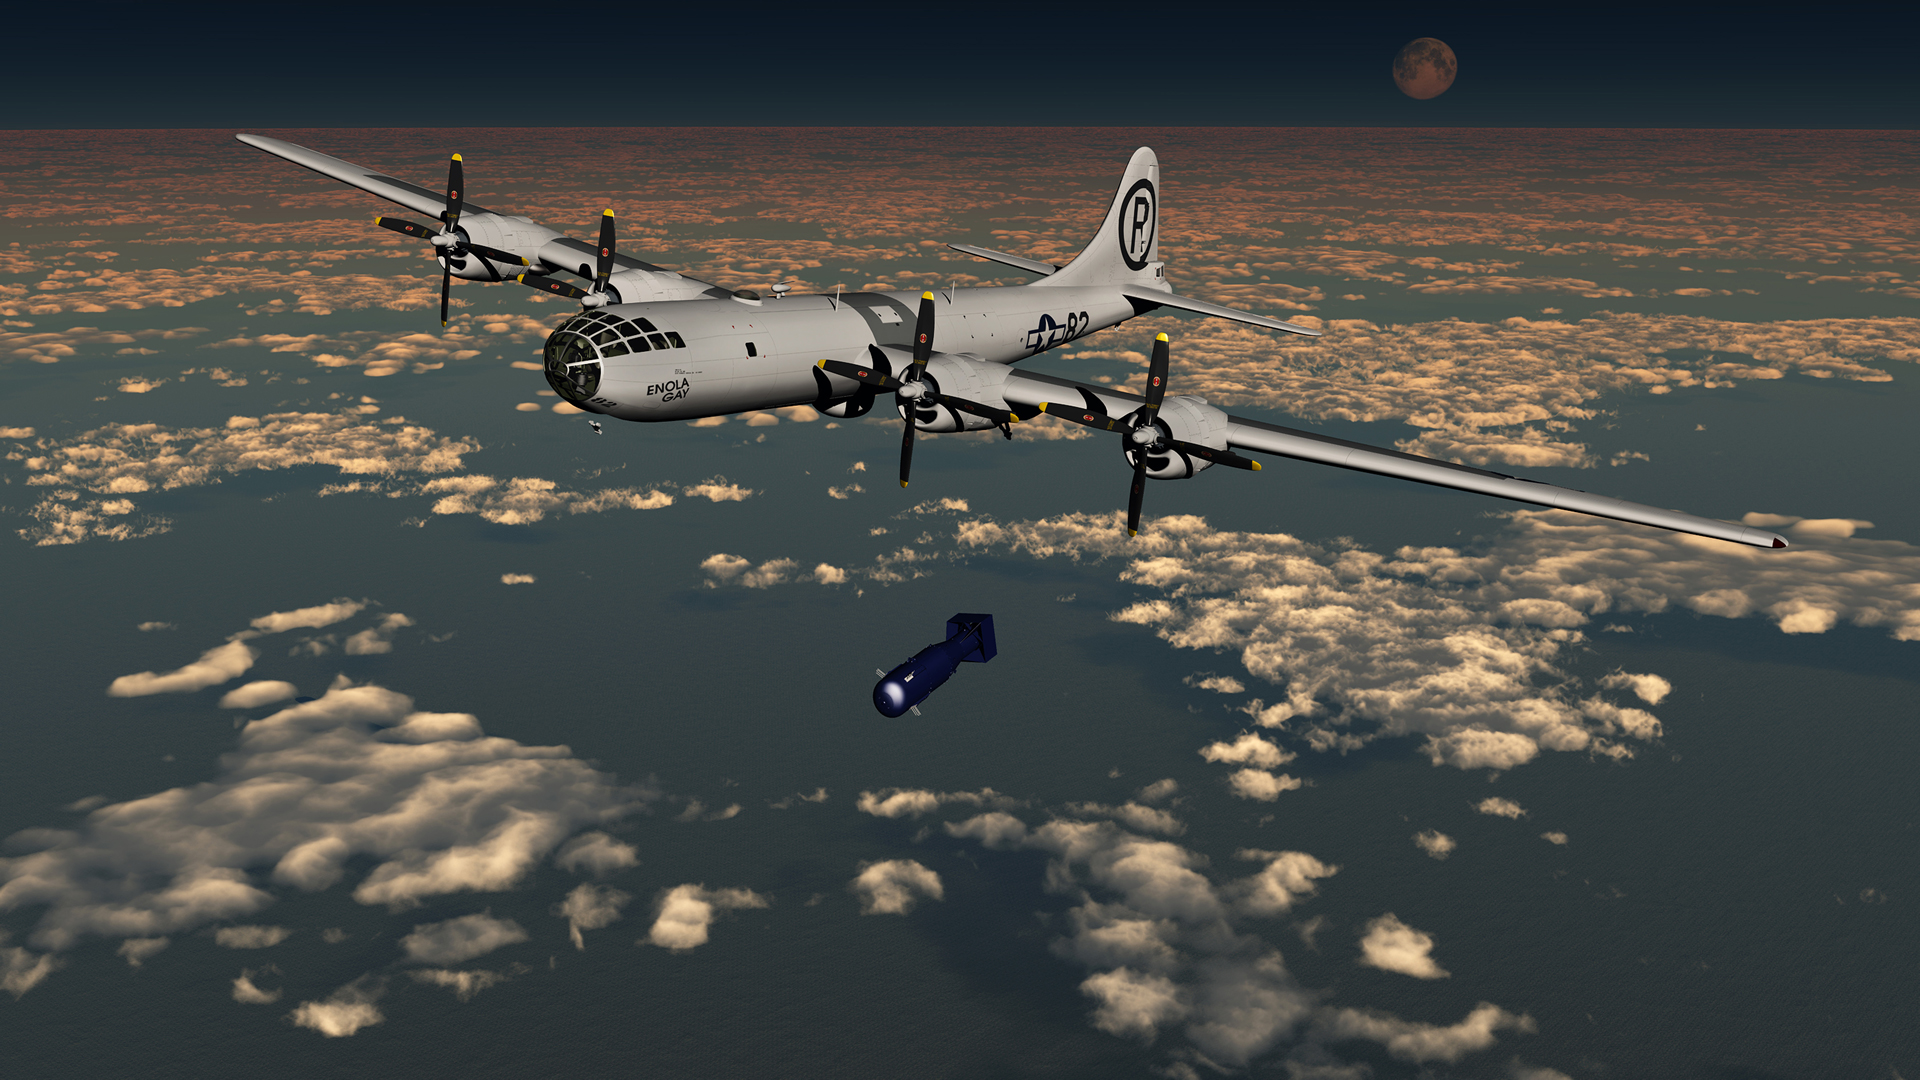 Enola Gay drops the world's first atom bomb, over the city of Hiroshima